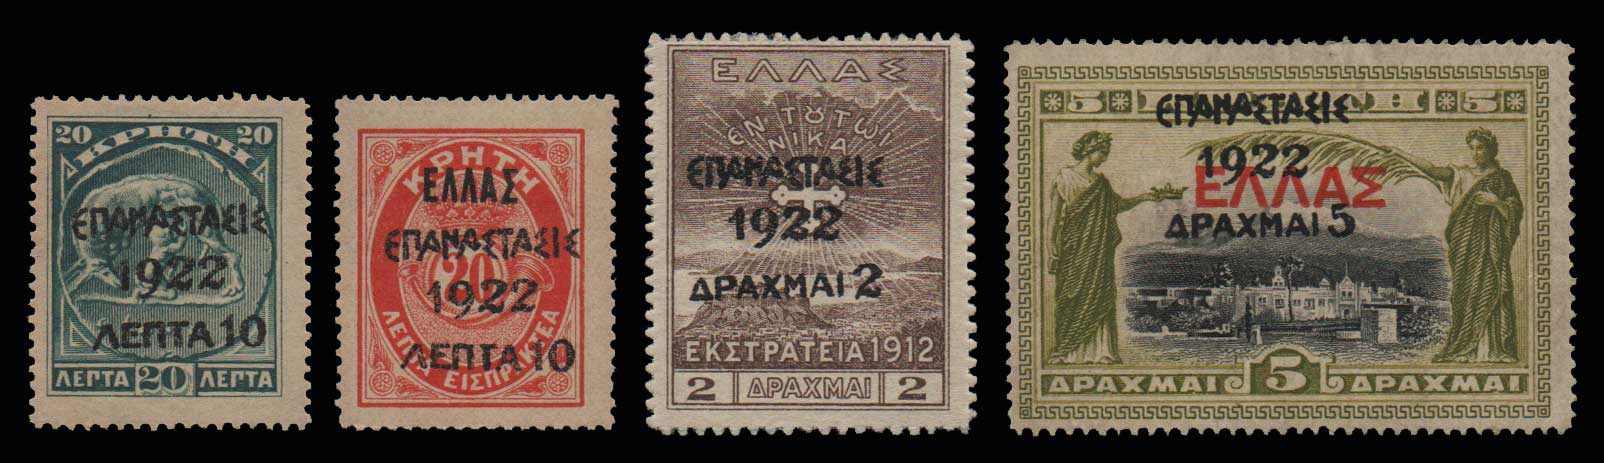 Lot 641 - -  1911 - 1923 επαναστασισ 1922  ovpt. -  Athens Auctions Public Auction 71 General Stamp Sale